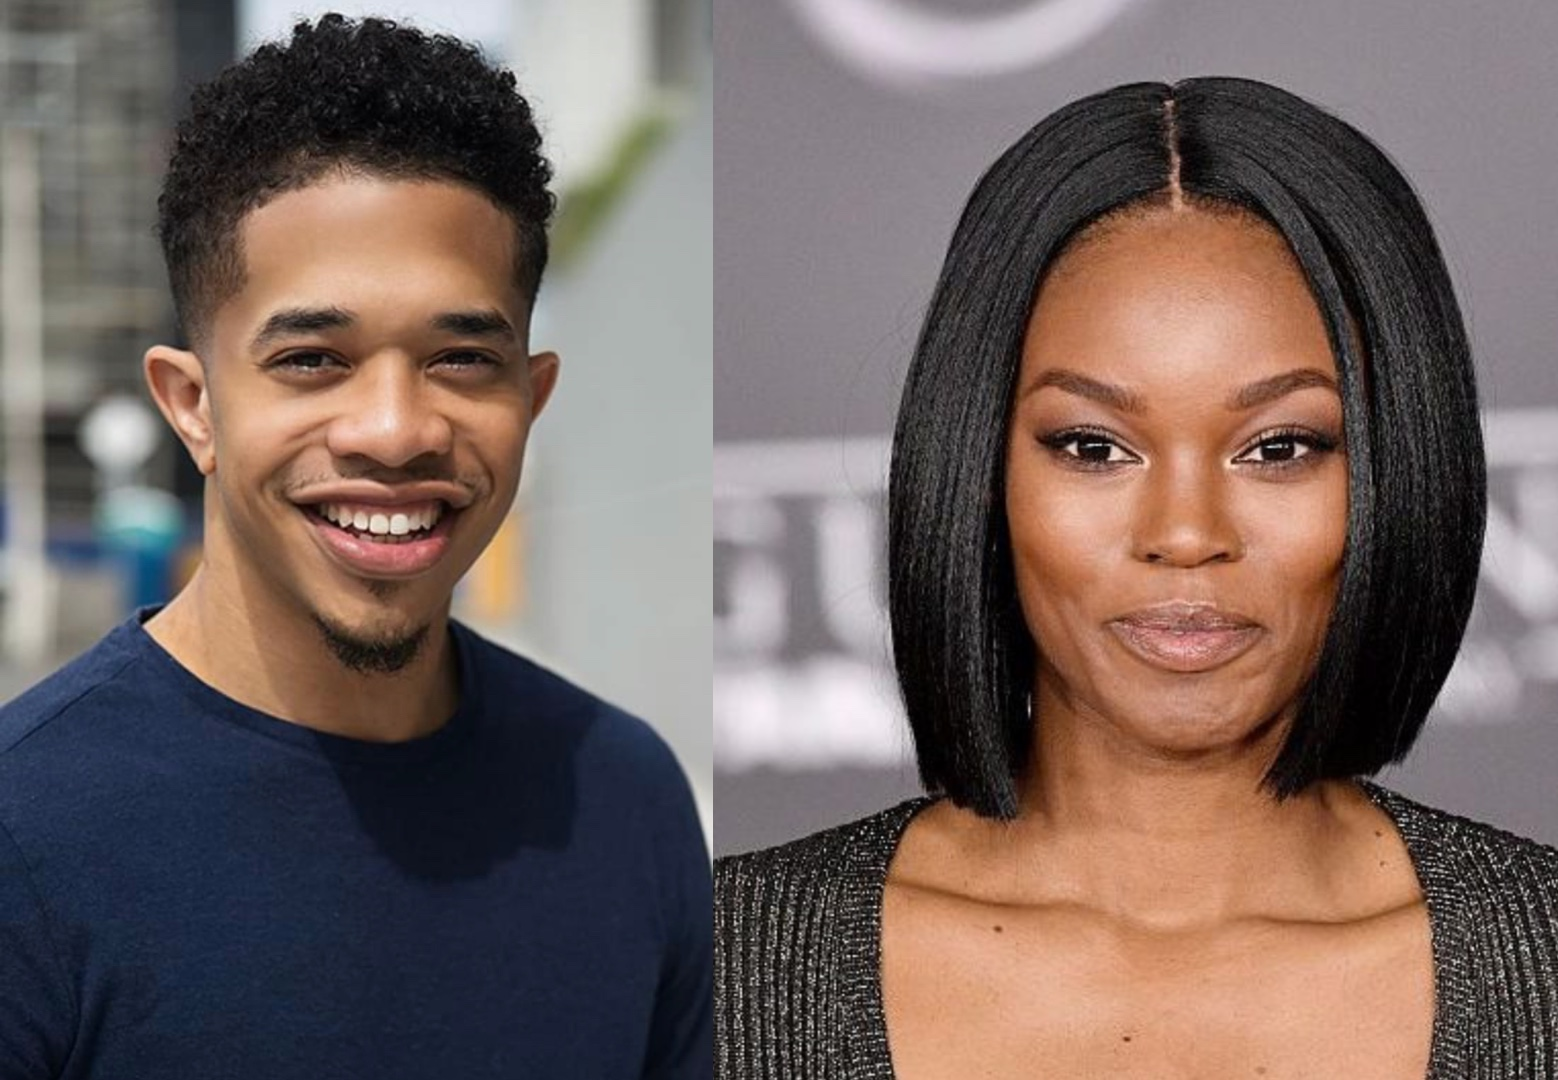 Actors Gary LeRoi Gray and Eugena Washington Cast as Leads of Original Scripted Limited Series, TRACE for New Streaming Service VIM2Tv